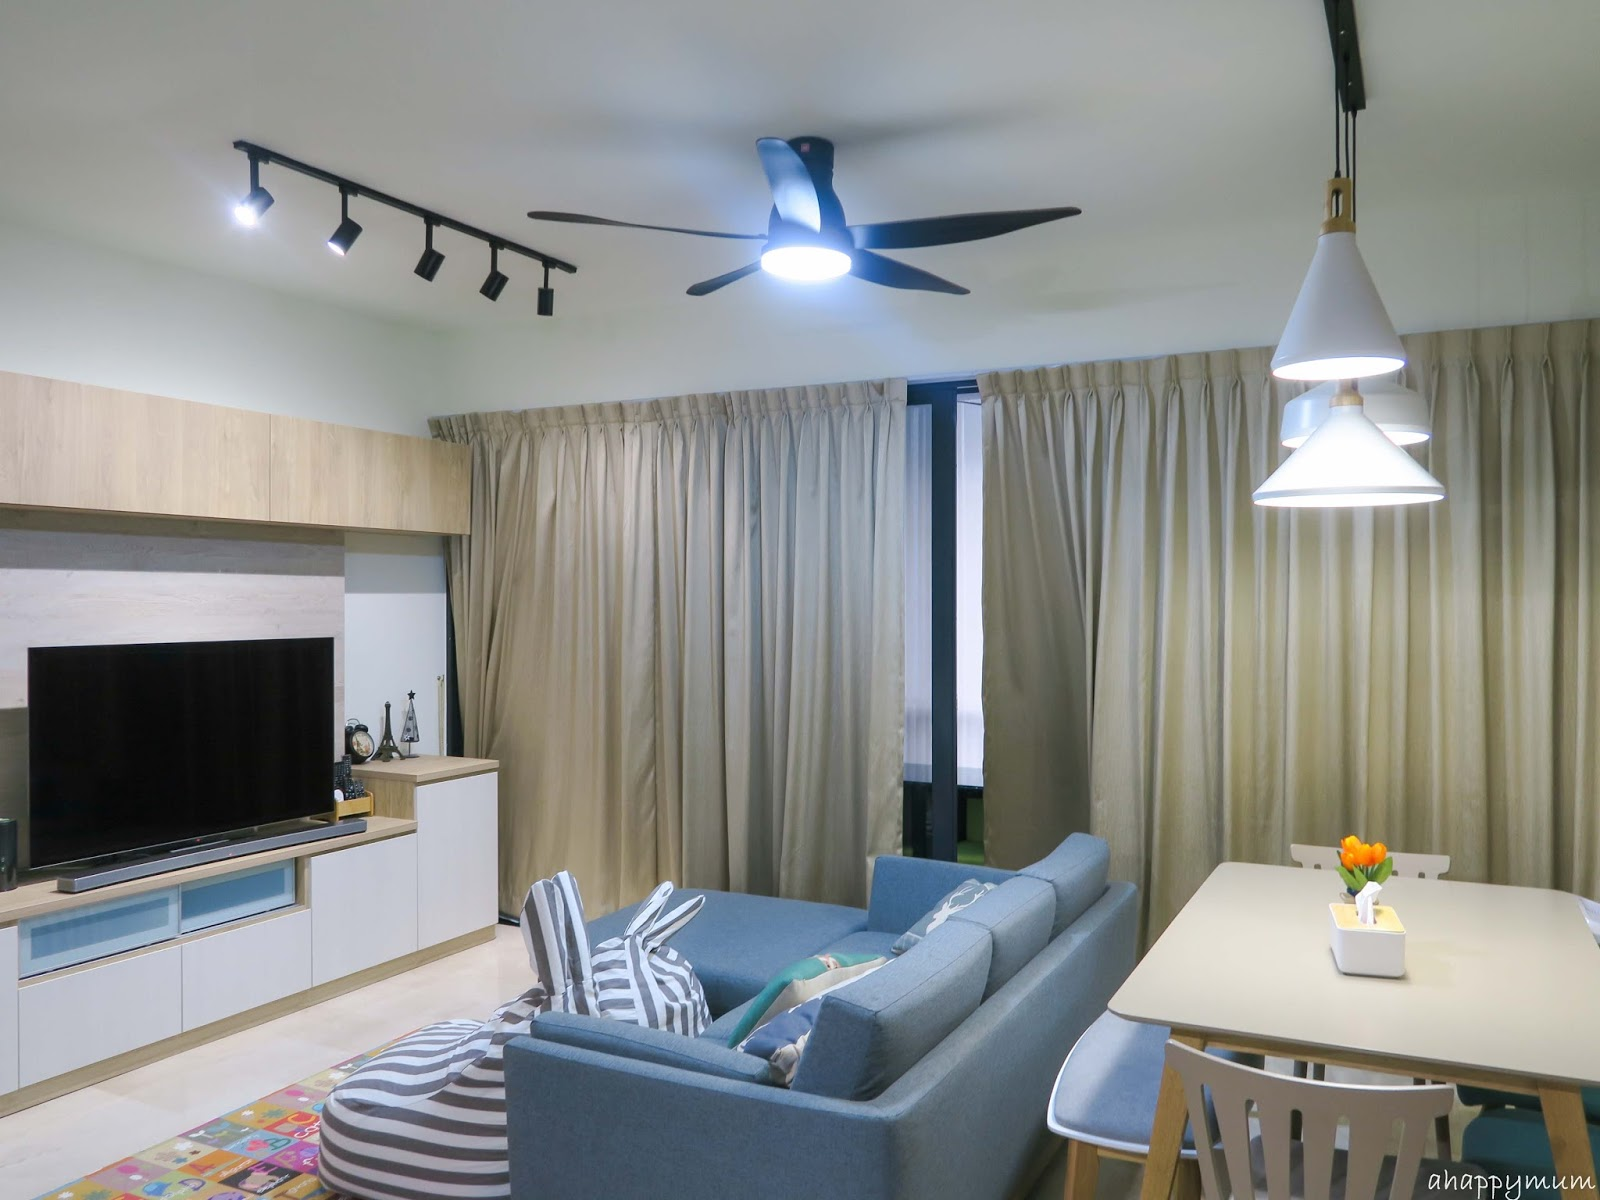 A happy mum singapore parenting blog for both the living room and master bedroom we installed the u60fw a remote controlled ceiling fan that has a dc motor and measures 60 inches 150cm in publicscrutiny